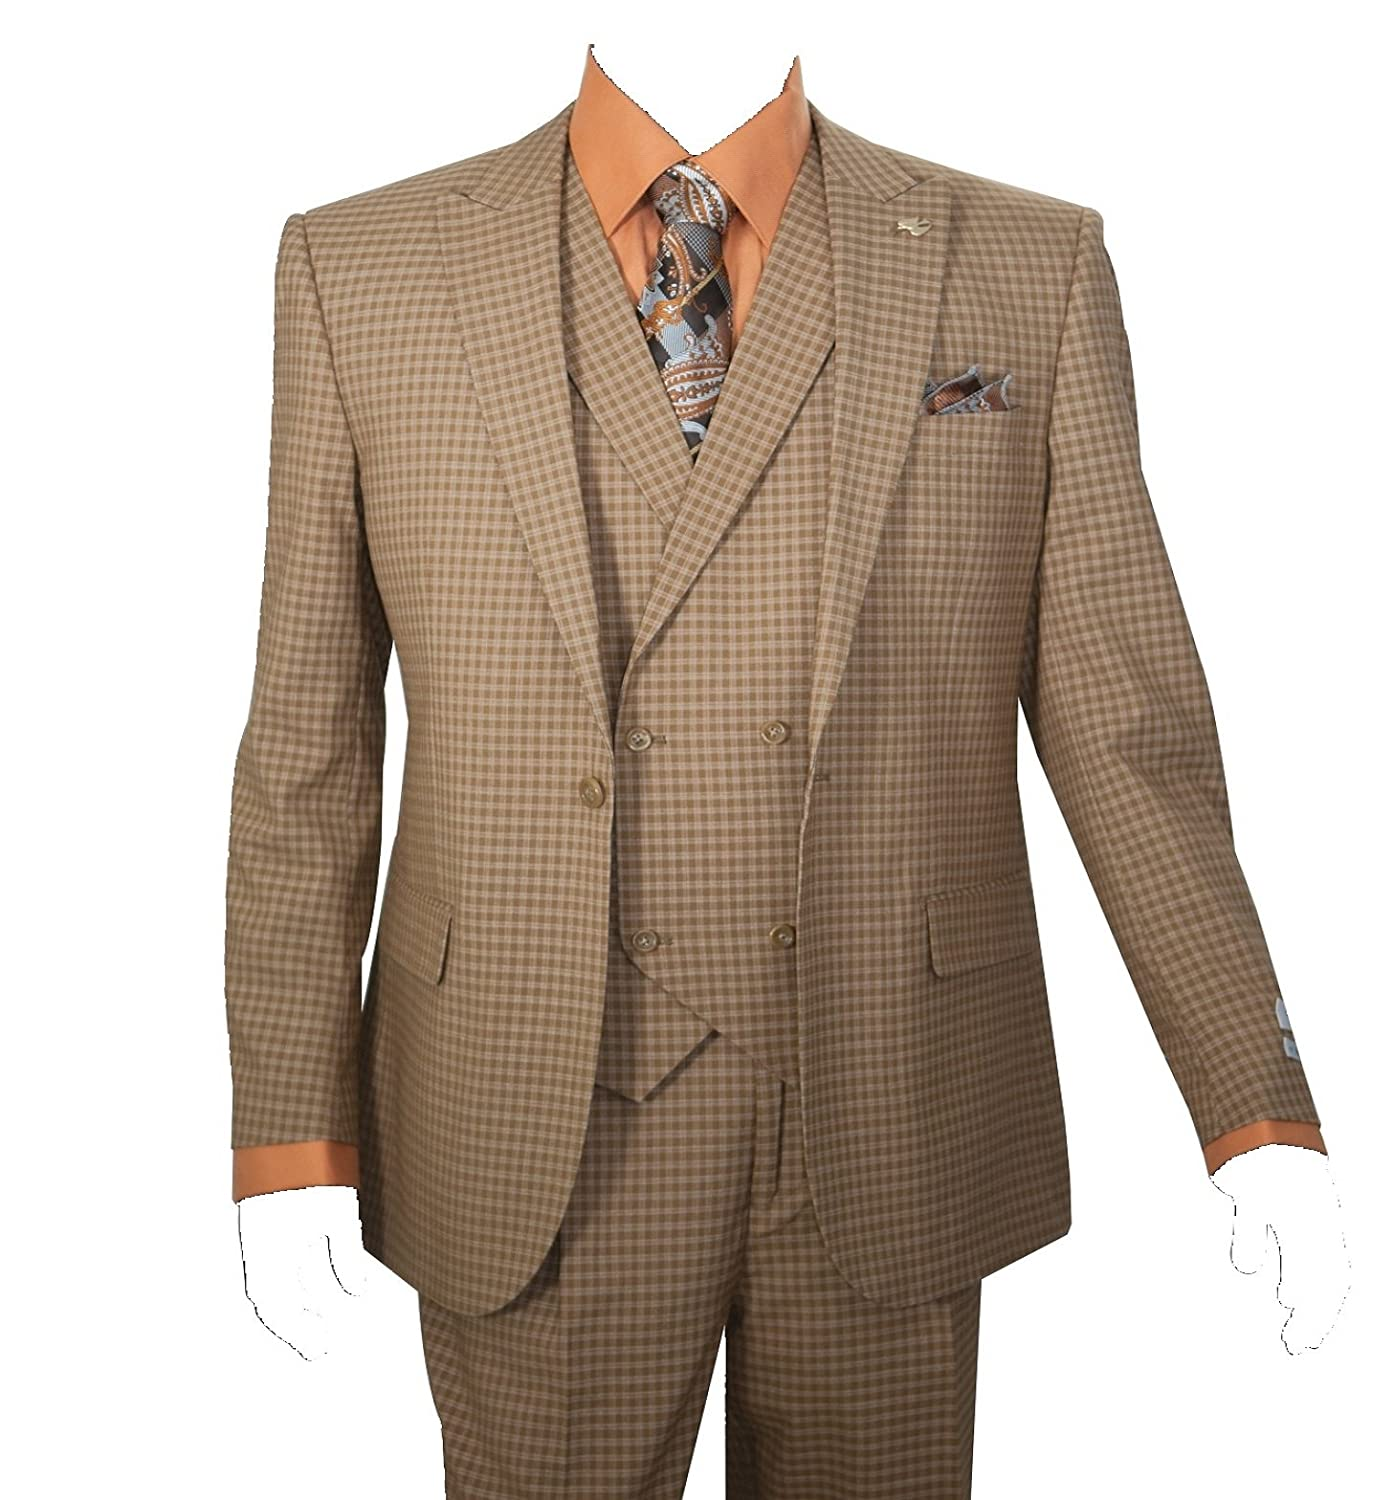 1900s Edwardian Men's Suits and Coats Mens 3 Piece Single Button Mini-Plaid Pattern Suit (Taupe) $149.99 AT vintagedancer.com